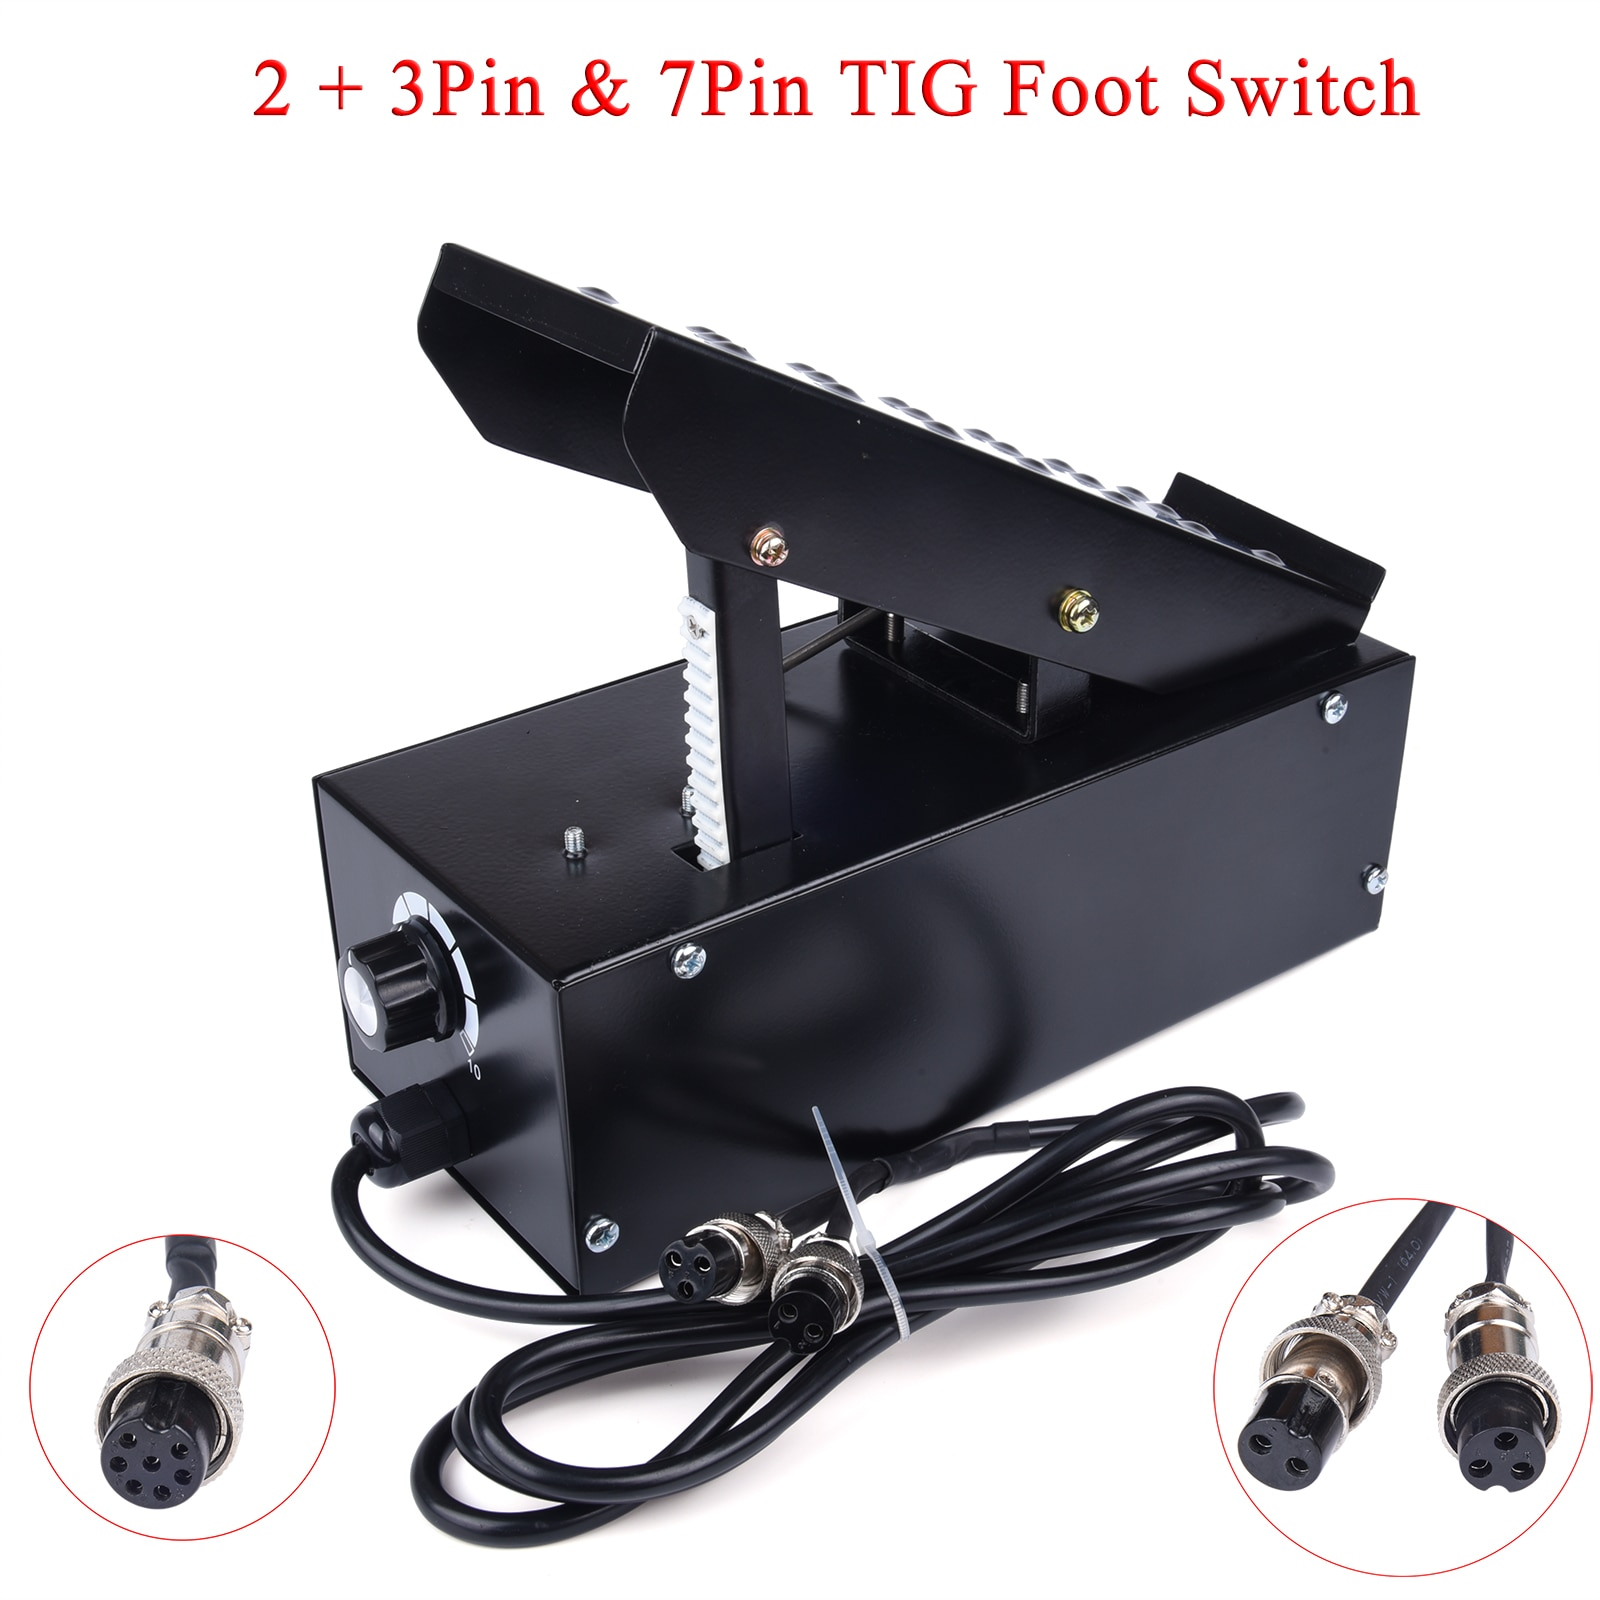 extra micro switch free your hand metal foot pedal foot switch 1 8 meters cable 2 pins connector spot welding switch tig torch 2+3/7 Pins Foot Pedal Power Amperage Controller Current Stepless Adjustable Switch For TIG ATGW Spot Weldding IGBT Machine